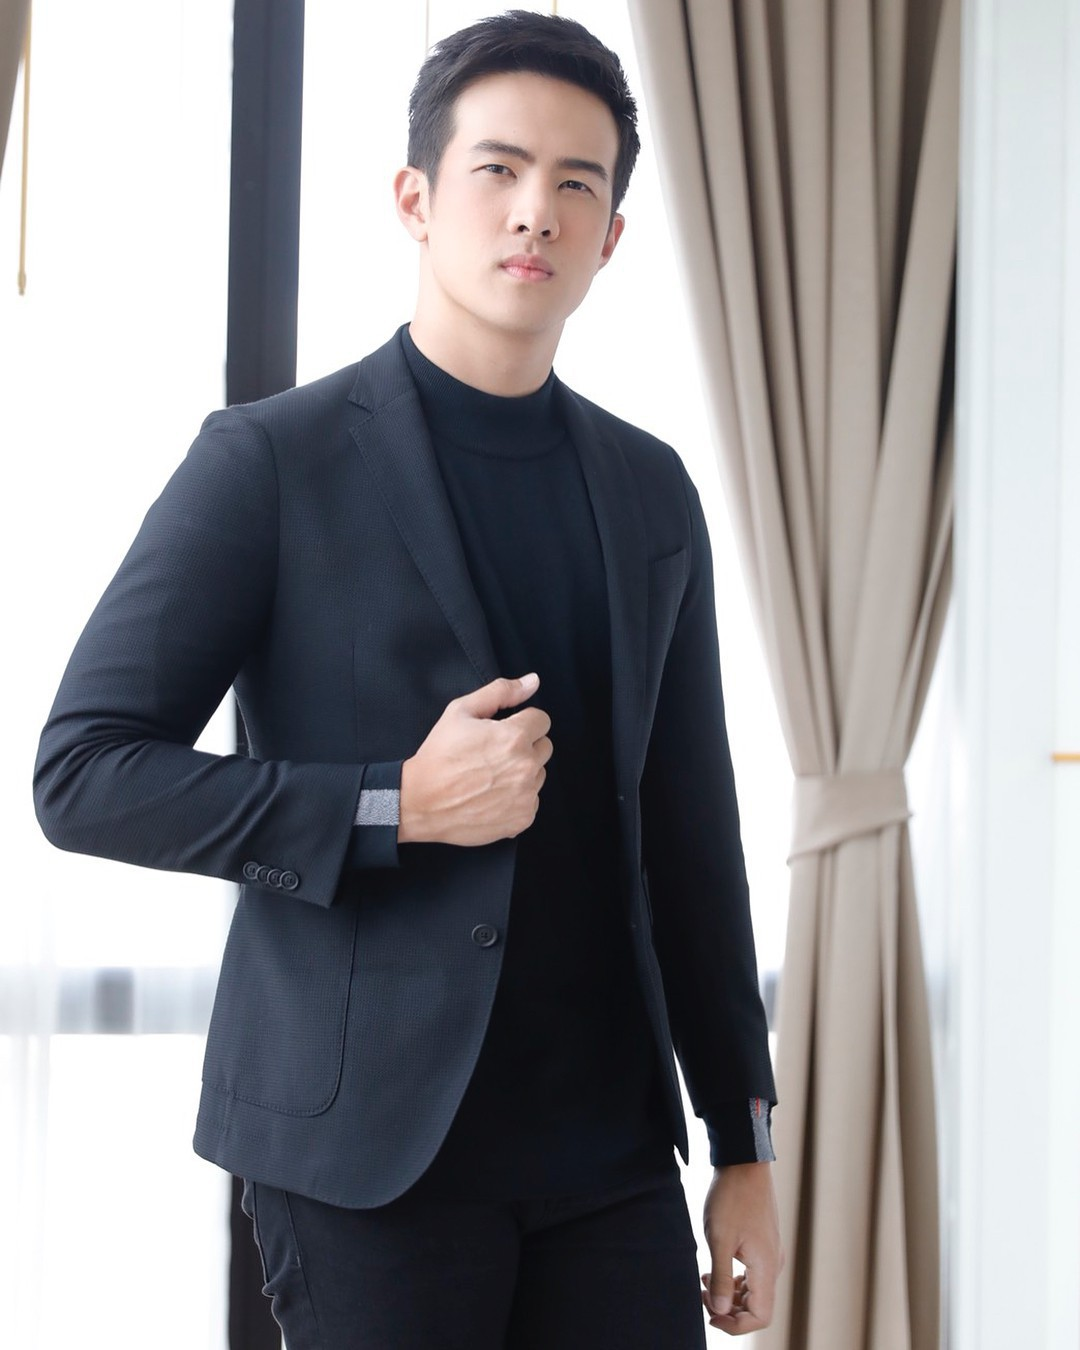 Thailand's best handsome man Hybrid: Nadech, Mario are both but the number 1 is amazing - Photo 18.